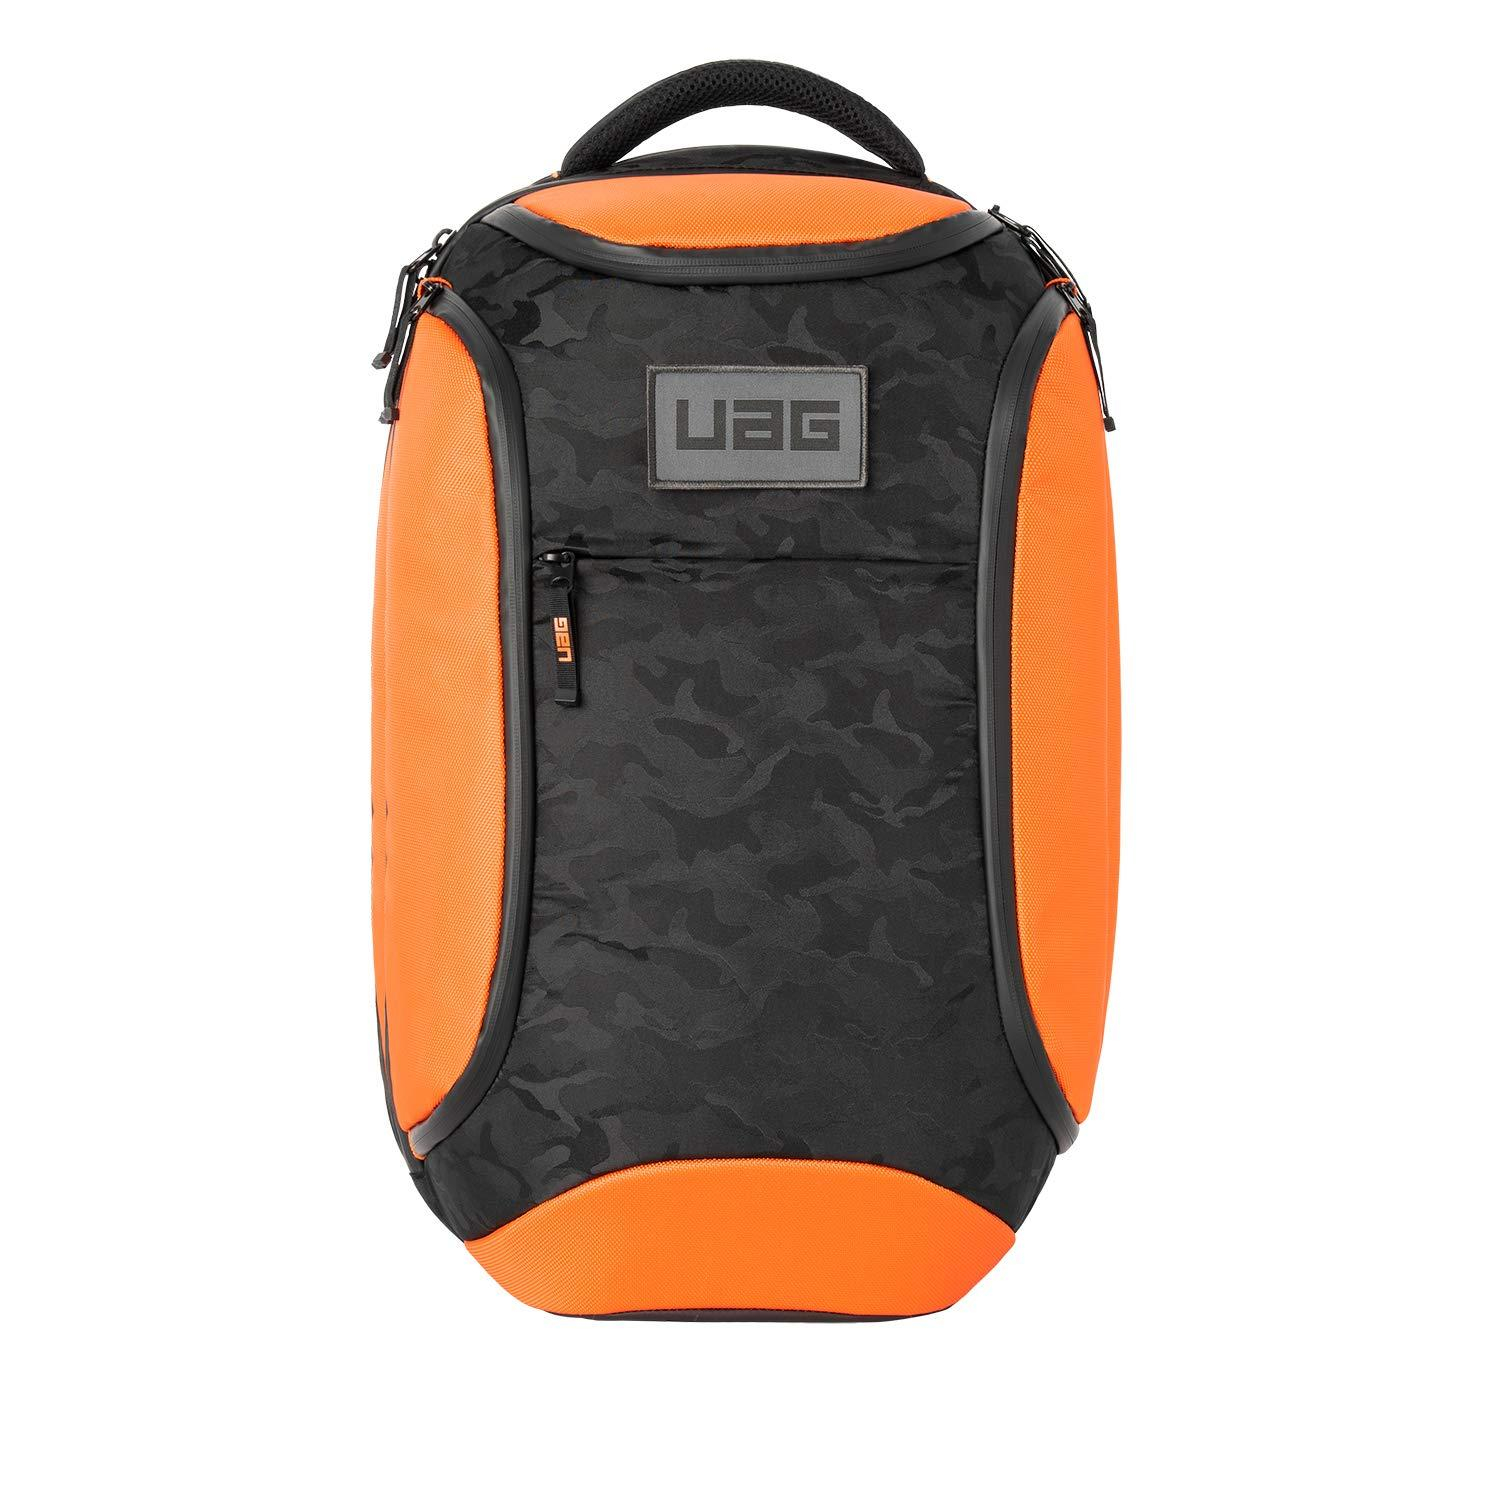 URBAN ARMOR GEAR UAG BACKPACK 24L(オレンジ/ミッドナイトカモ)(UAG-BKP-OR)【smtb-s】